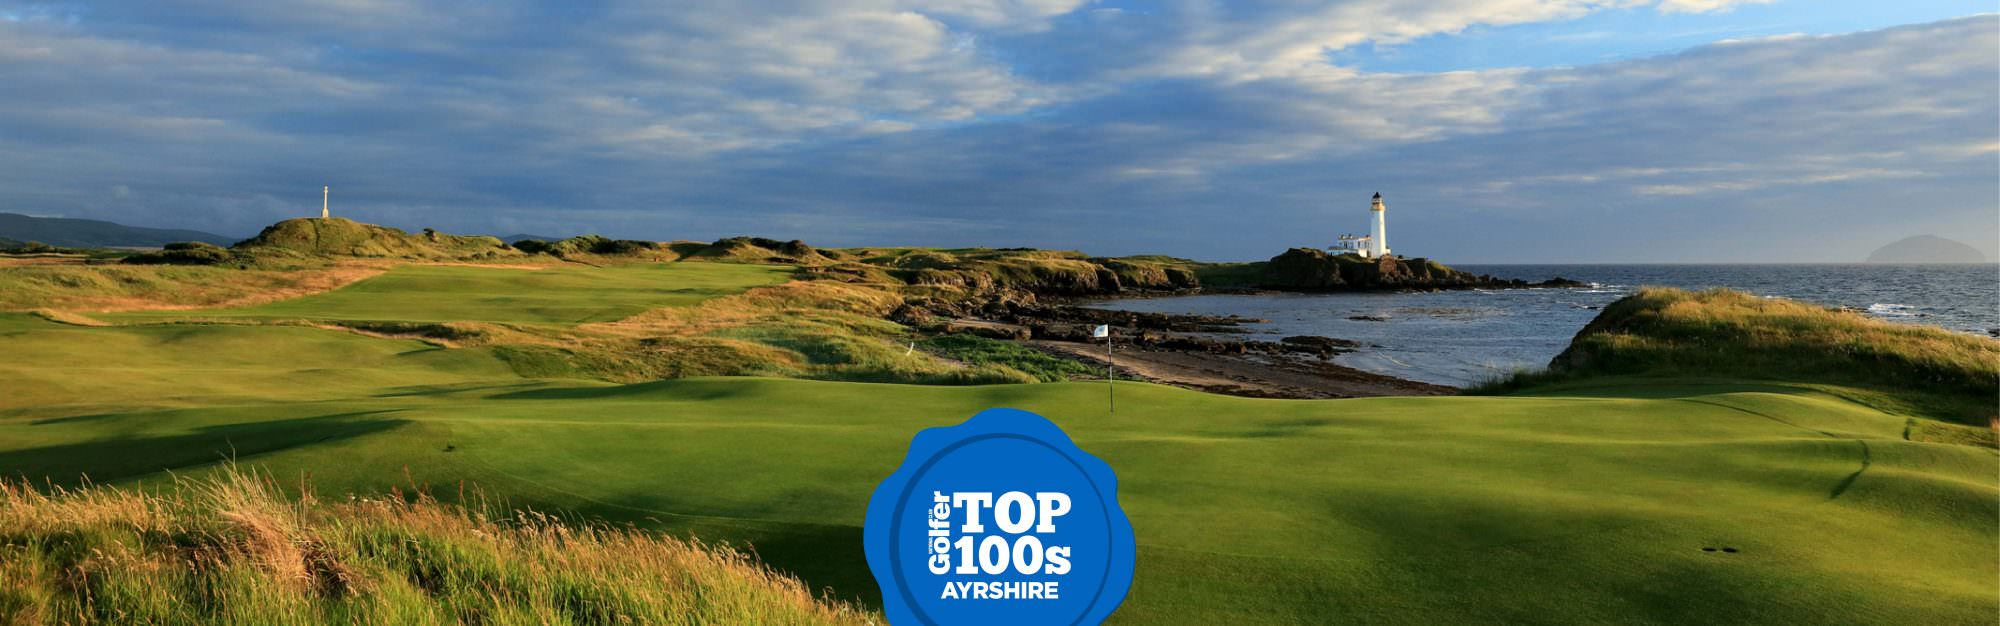 Welcome to NCG Top 100s - the home of golf course rankings